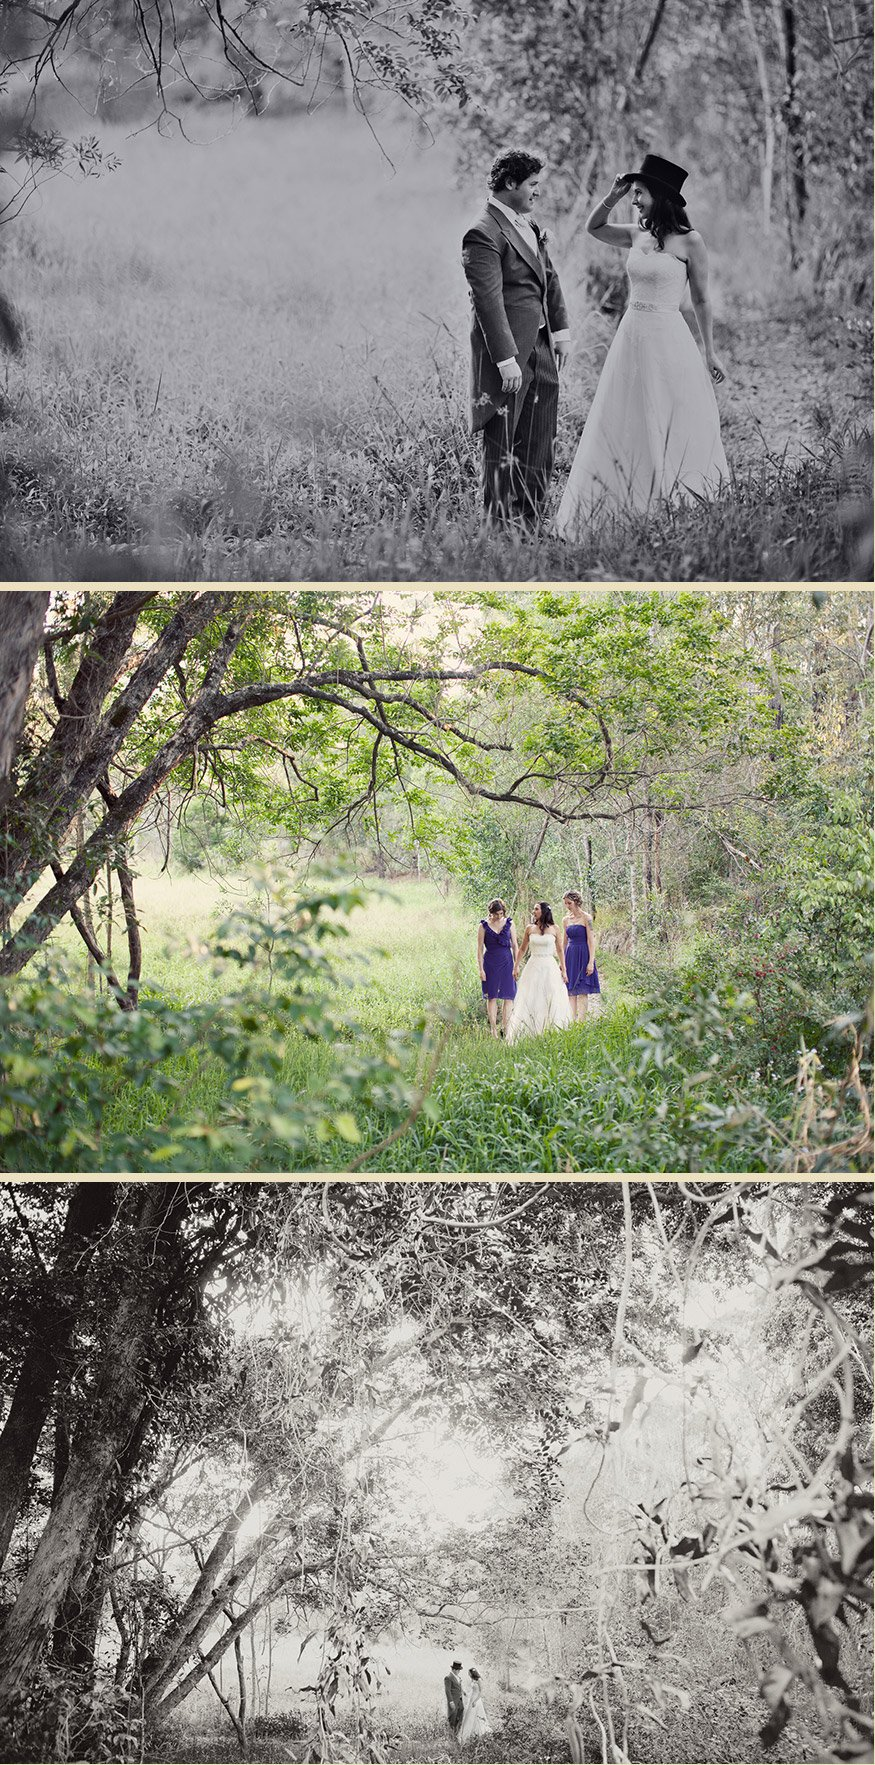 Brisbane Wedding Phoographer Blog-collage-1323535529865